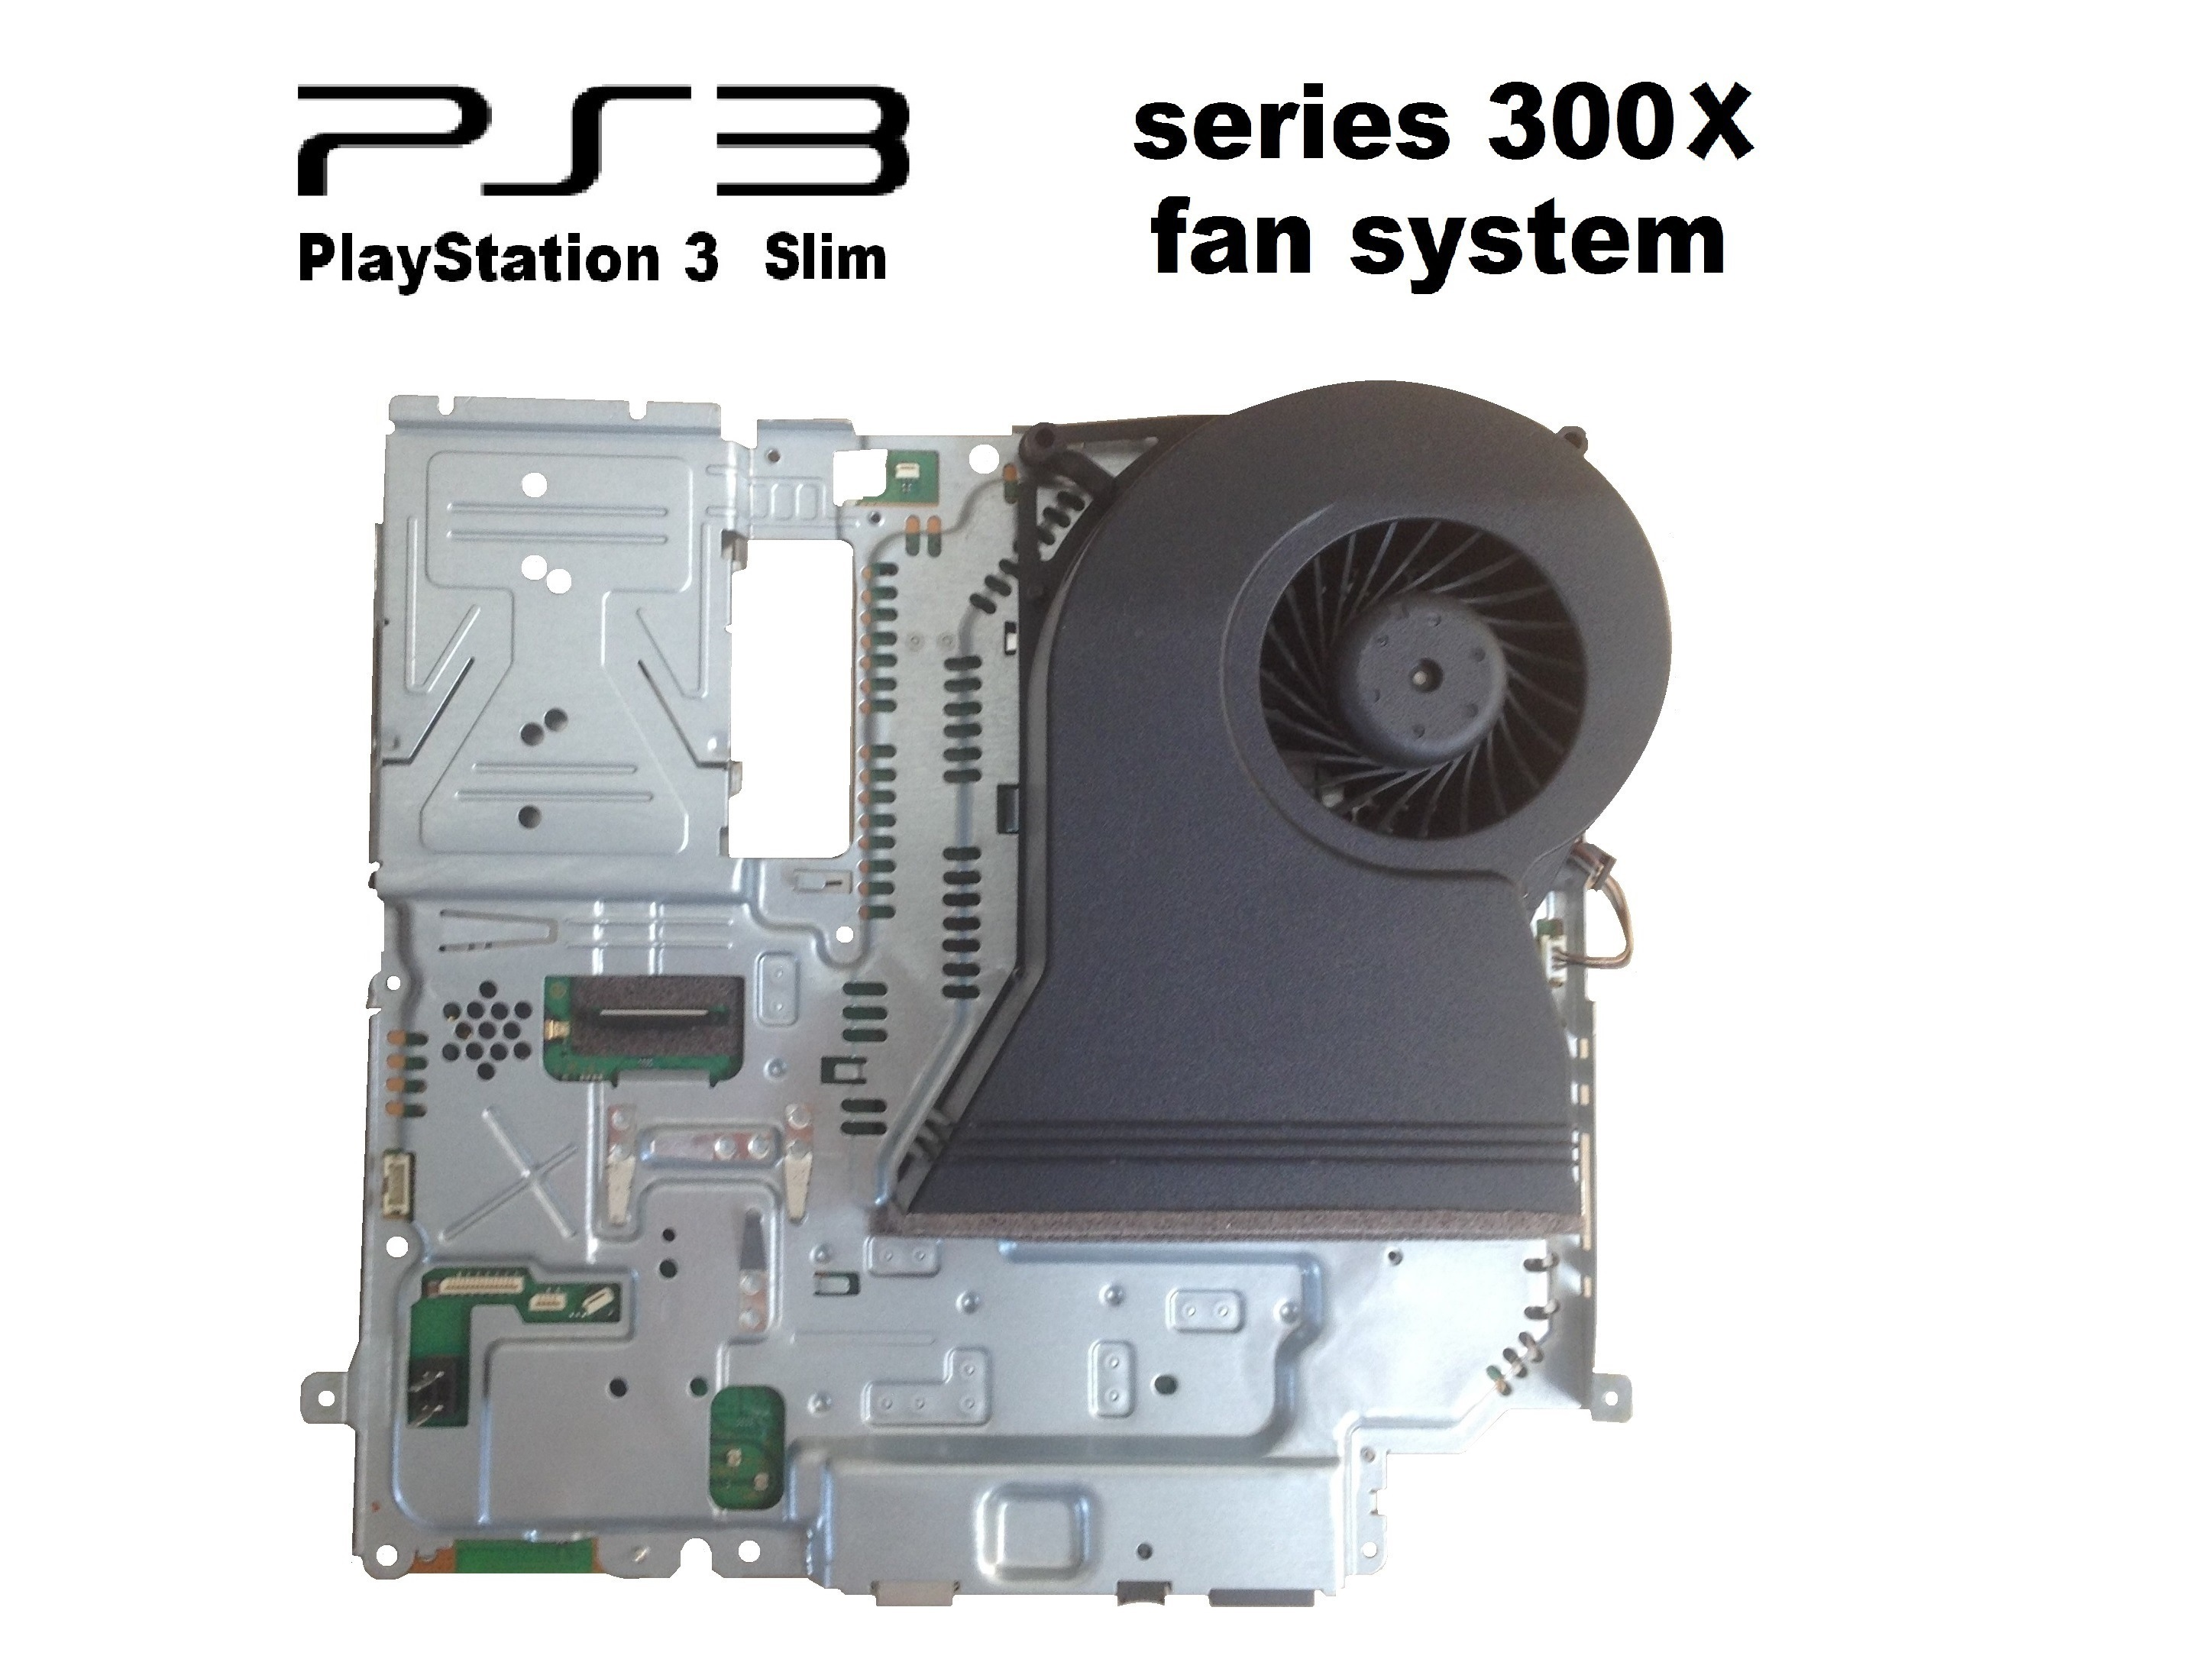 Playstation 3 Slim Repair Ifixit Circuit Diagram Fan System